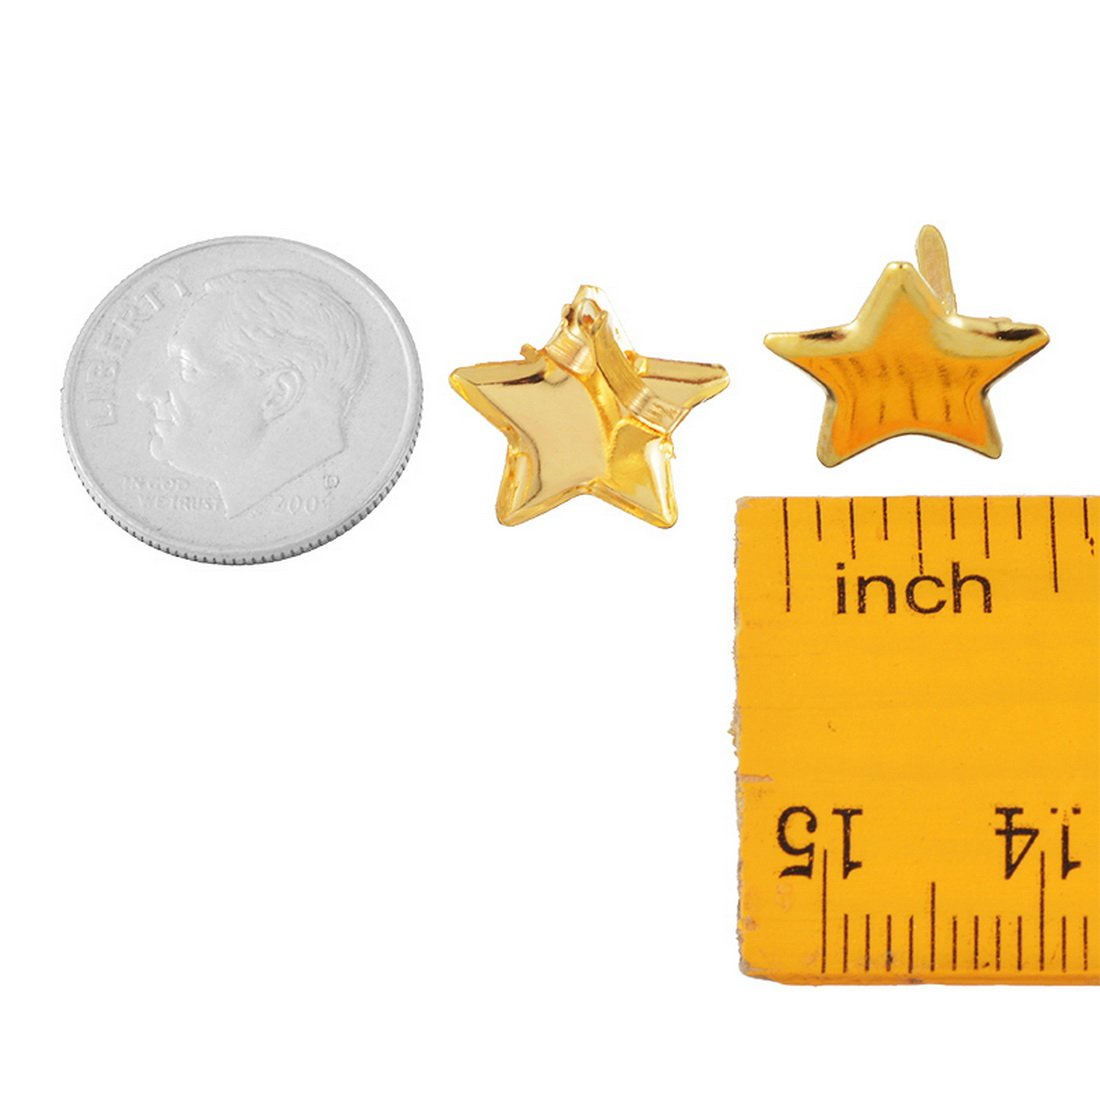 Souarts Gold Color Star Mini Brads for DIY Scrapbooking Embellishment Pack of 50pcs by Souarts (Image #3)